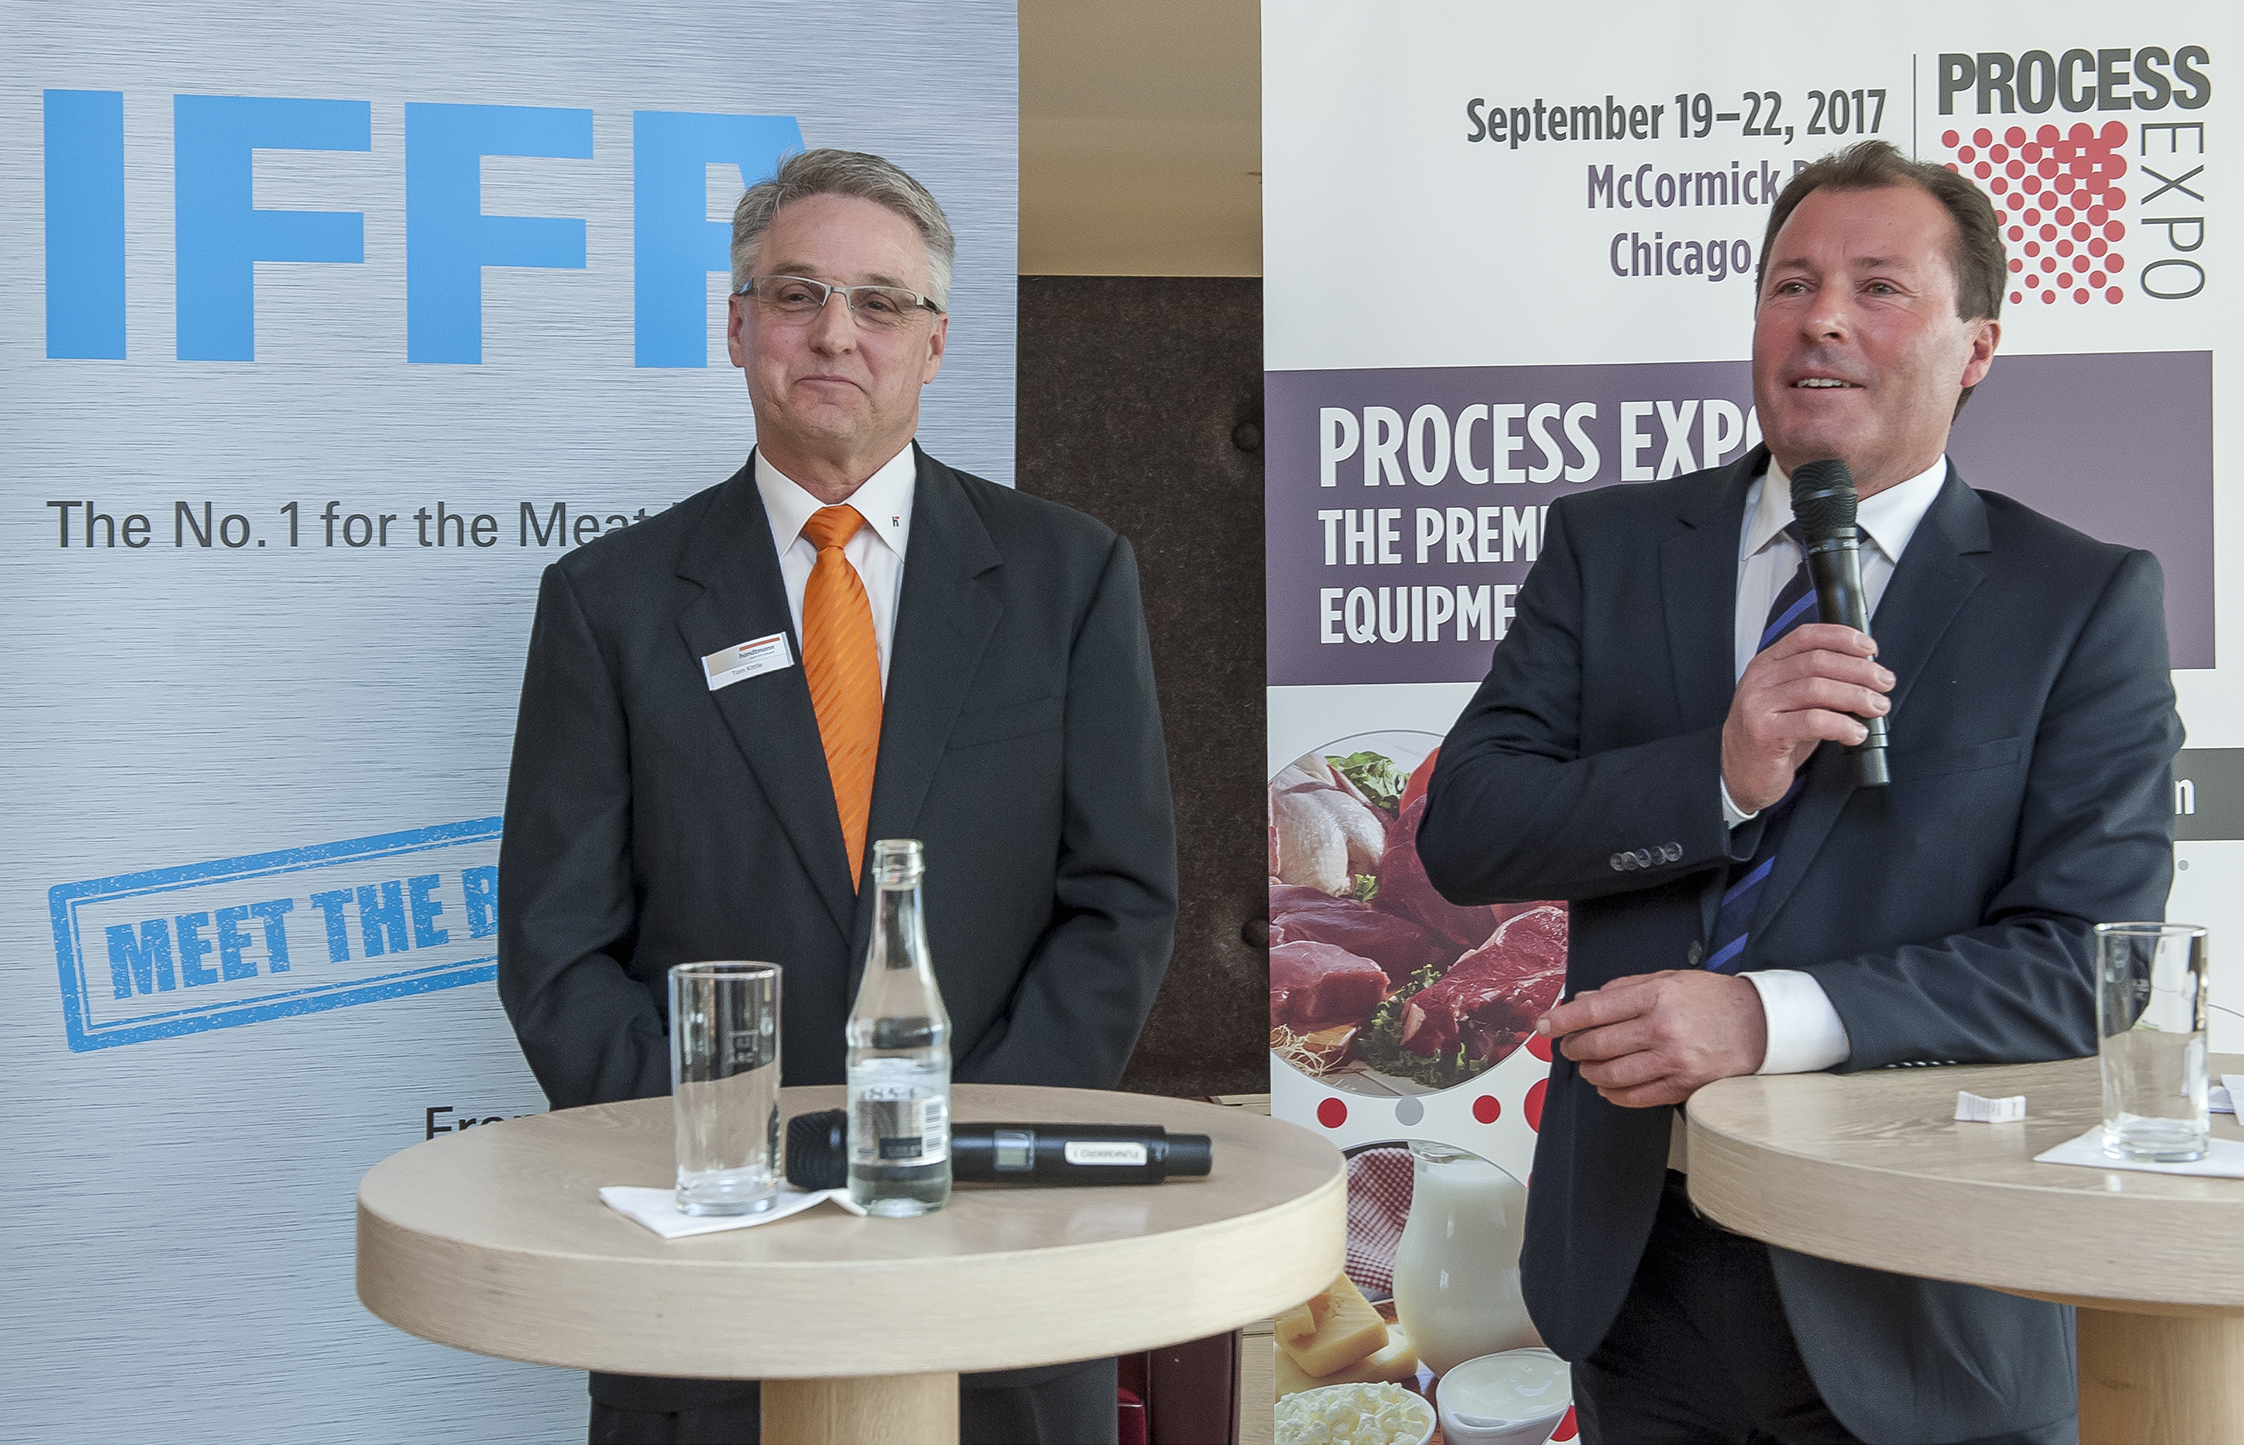 Process Expo: f.l.t.r. Tom Kittle (Chairman of FPSA and President of Handtmann Inc. and Handtmann Canada Limited), Wolfgang Marzin (President and Chief Executive Officer (CEO) of Messe Frankfurt GmbH)